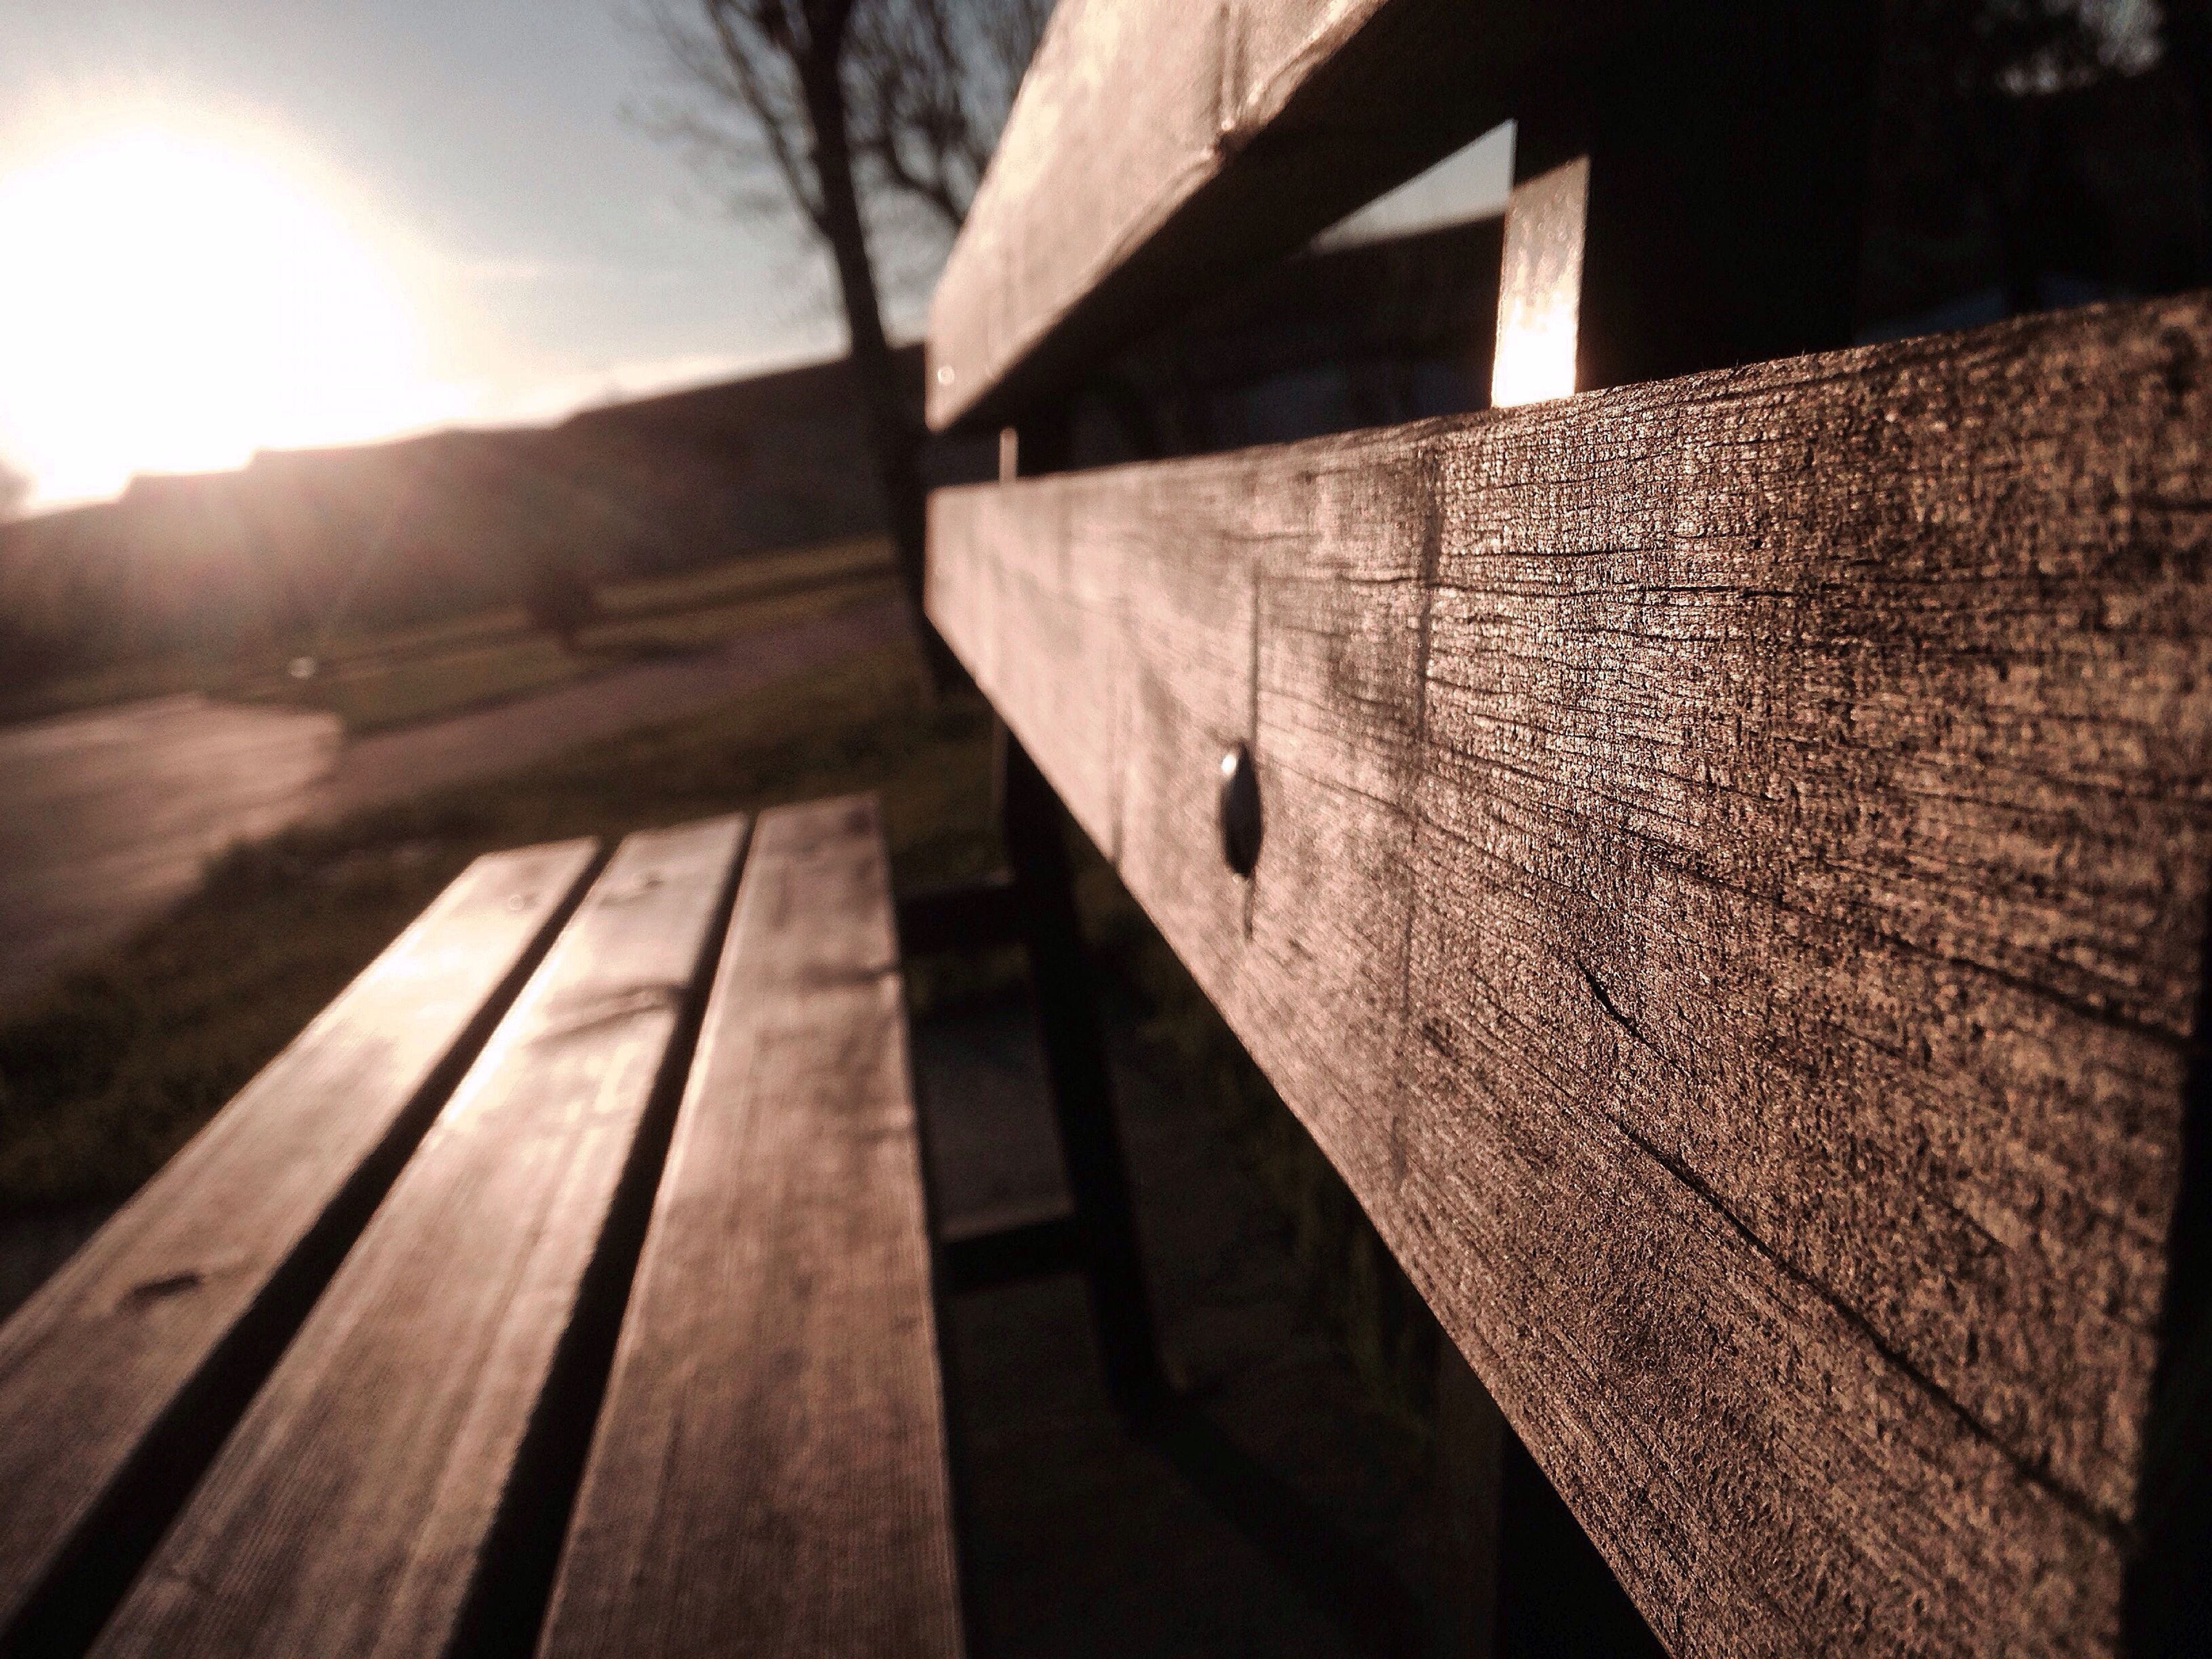 built structure, wood - material, architecture, sunlight, wooden, building exterior, steps, the way forward, steps and staircases, shadow, no people, staircase, sun, wood, day, railing, outdoors, sky, sunny, sunbeam